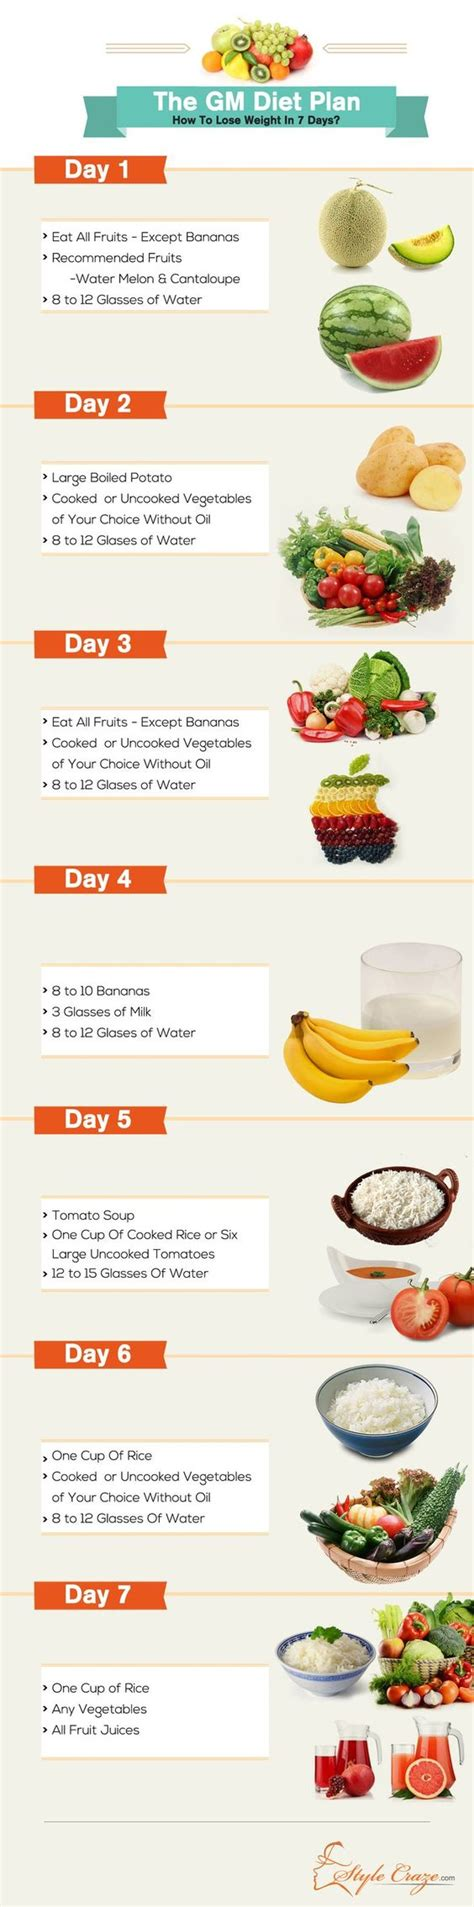 Lose Baby Weight 3 Day Detox by The Gm Diet Plan How To Lose Weight In Just 7 Days To